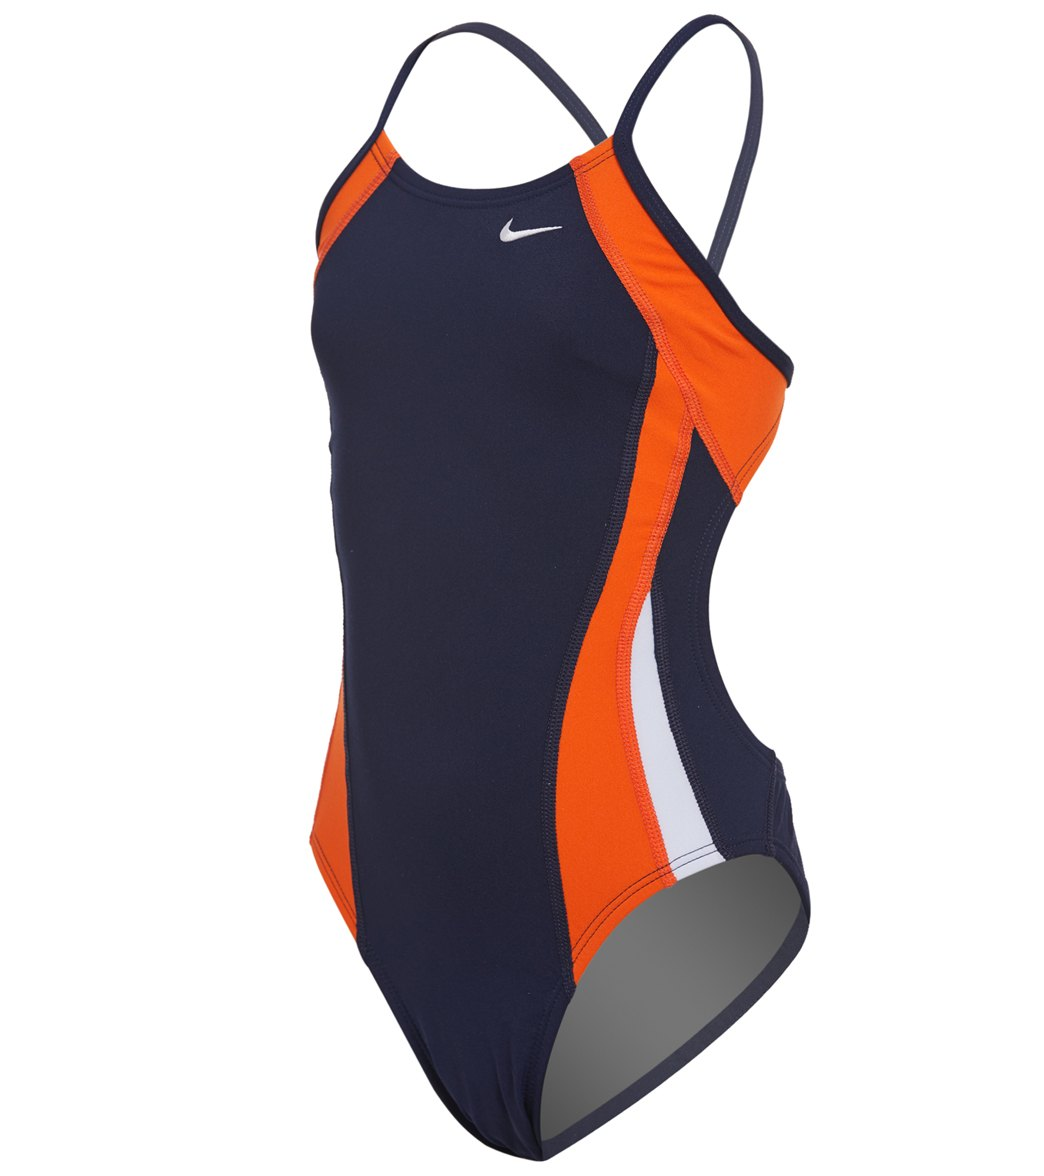 b0318a4f3a0 Nike Girls  Poly Color Surge Cut Out One Piece Swimsuit at SwimOutlet.com -  Free Shipping